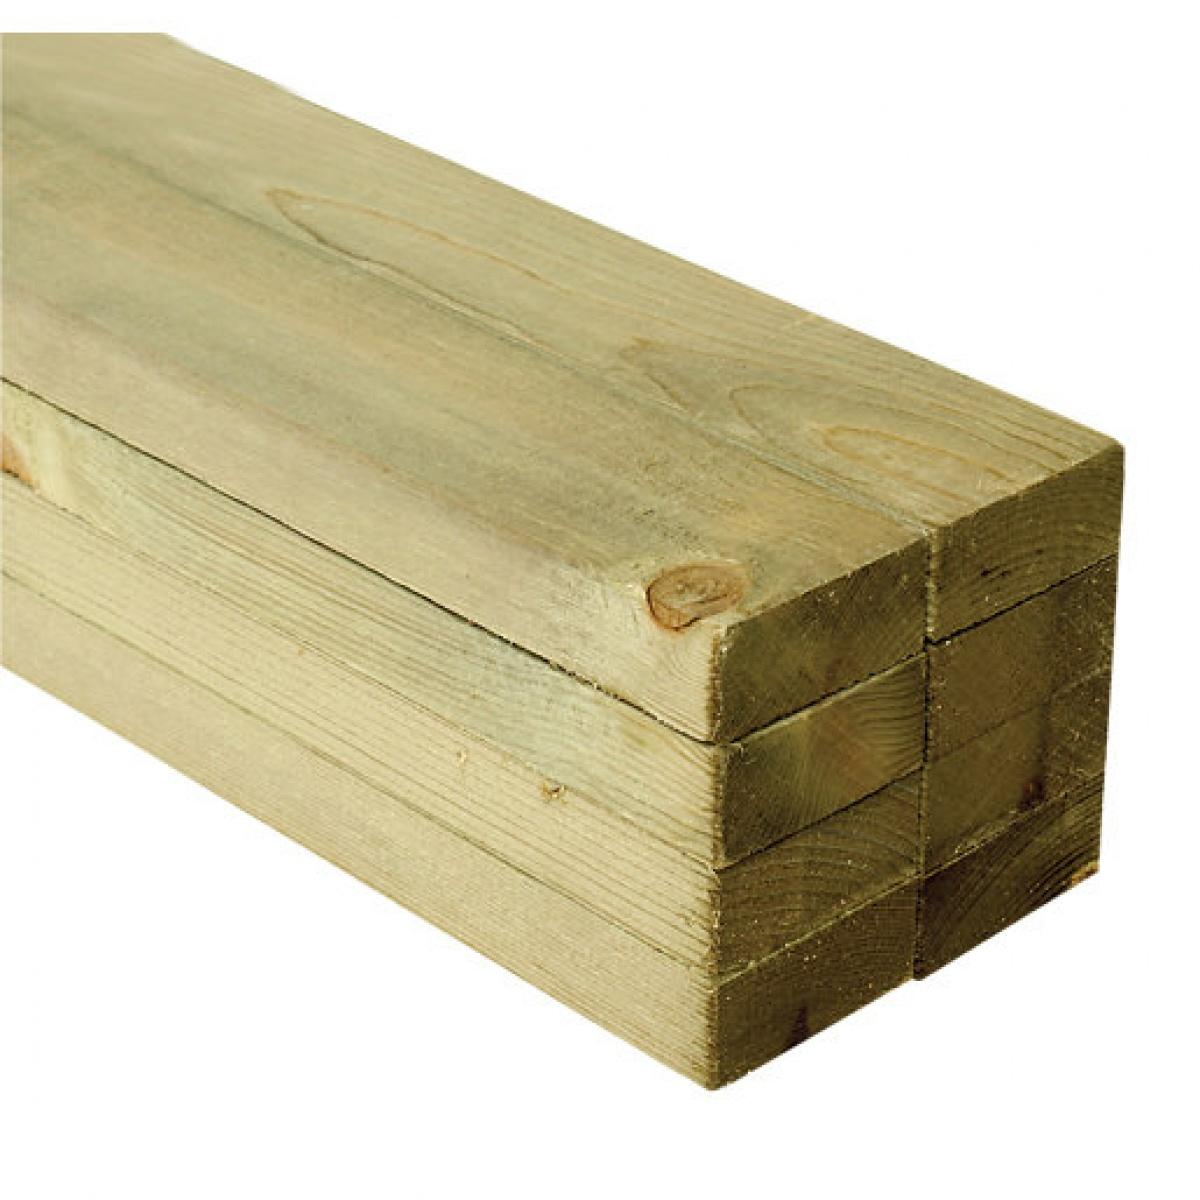 50mm x 100mm UNGRADED TREATED CARCASSING - Nottage Timber Merchants